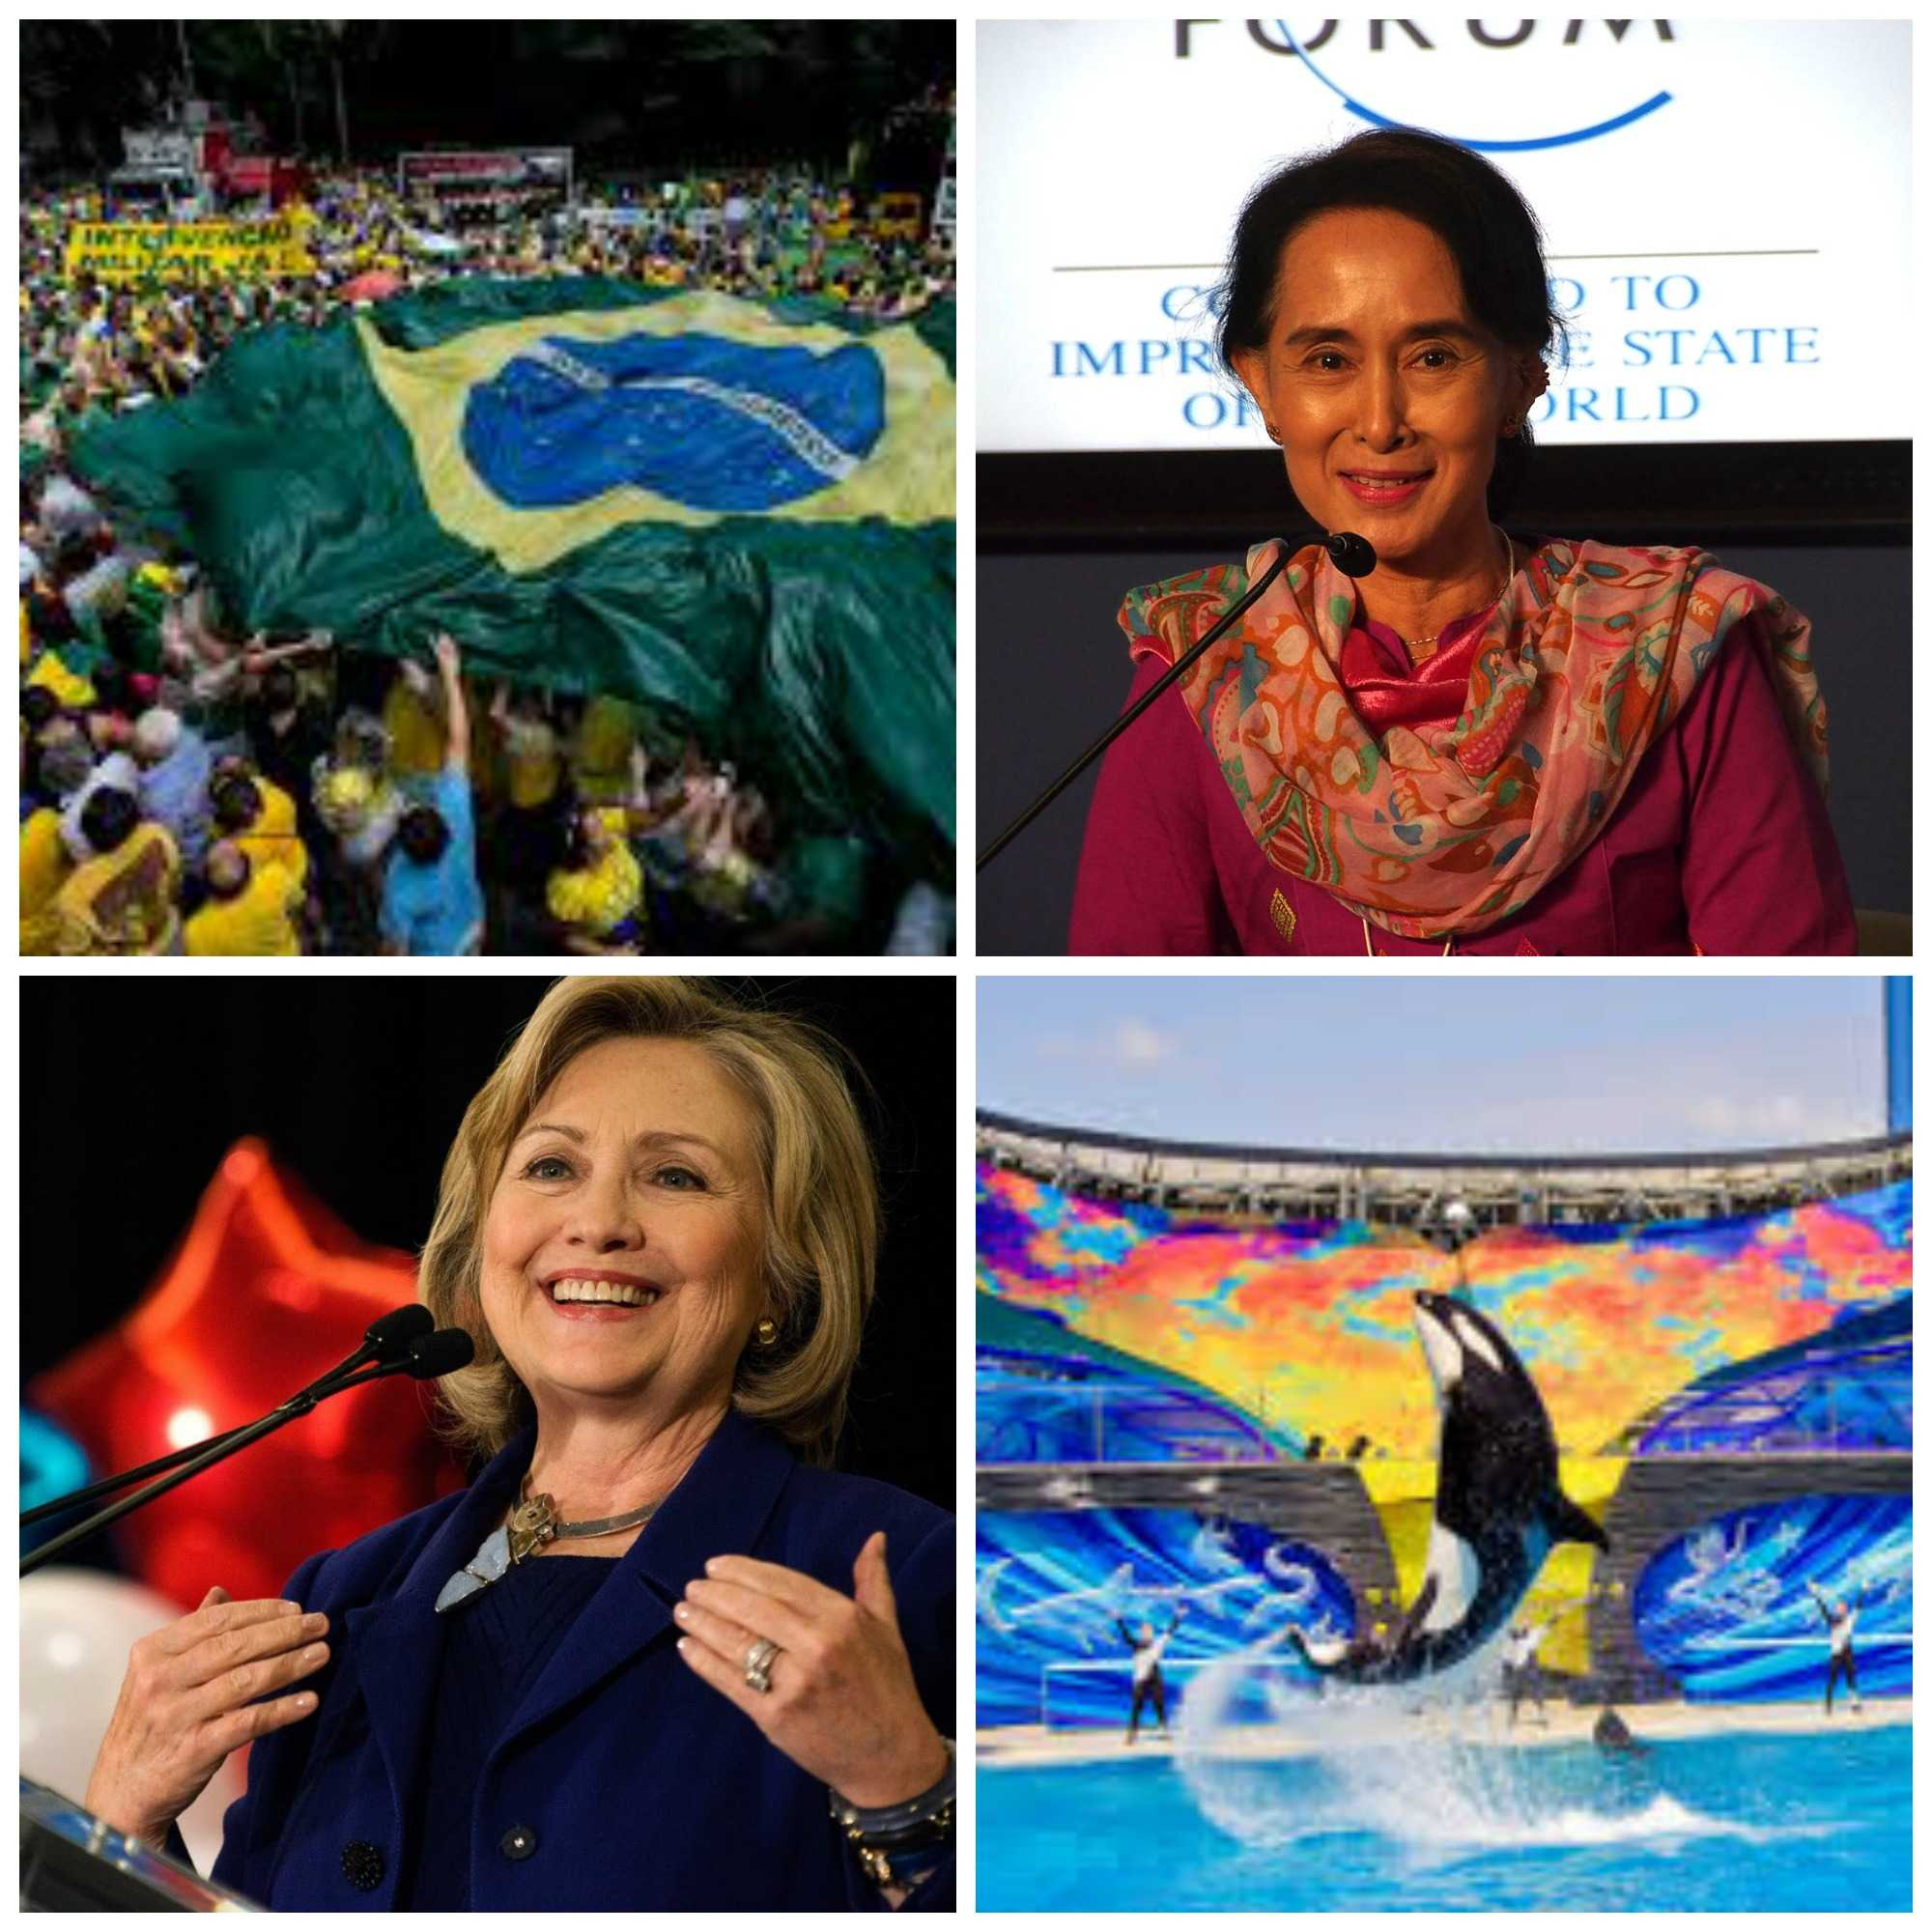 In news this week: protests in Brazil, civilian rule reaffirmed in Myanmar, Clinton sweeps Tuesday's primaries and Sea World announces new orca policy.